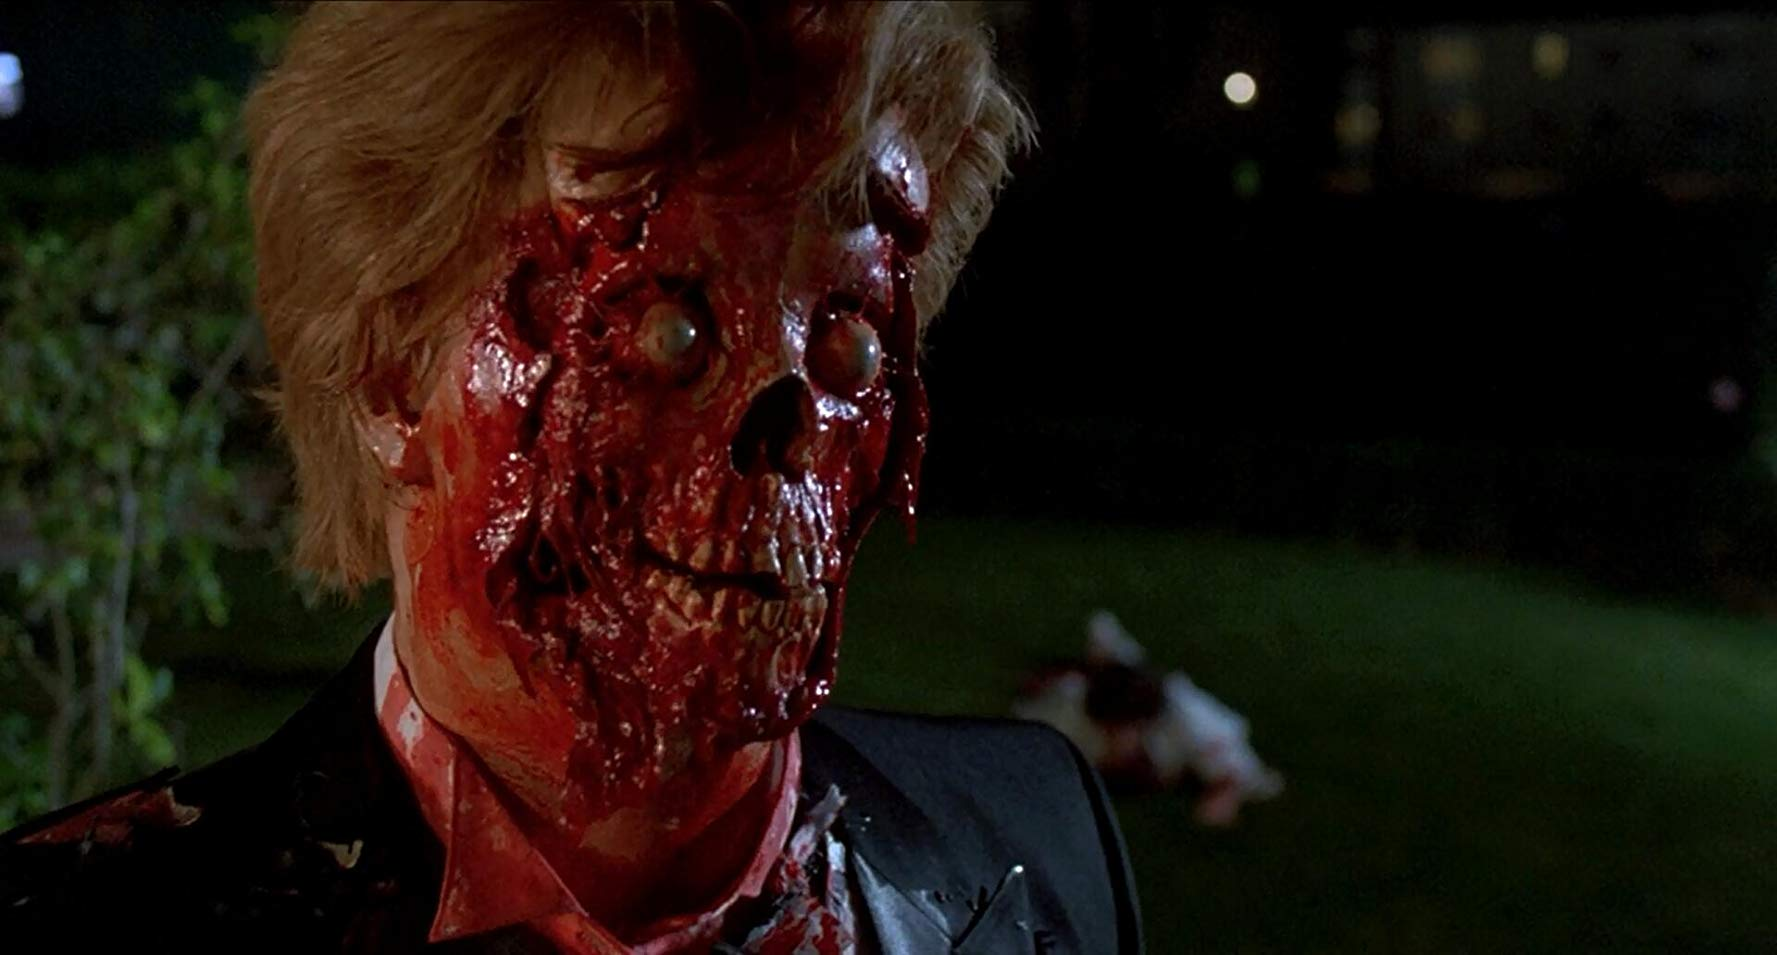 Zombified prom dates in Night of the Creeps (1986)